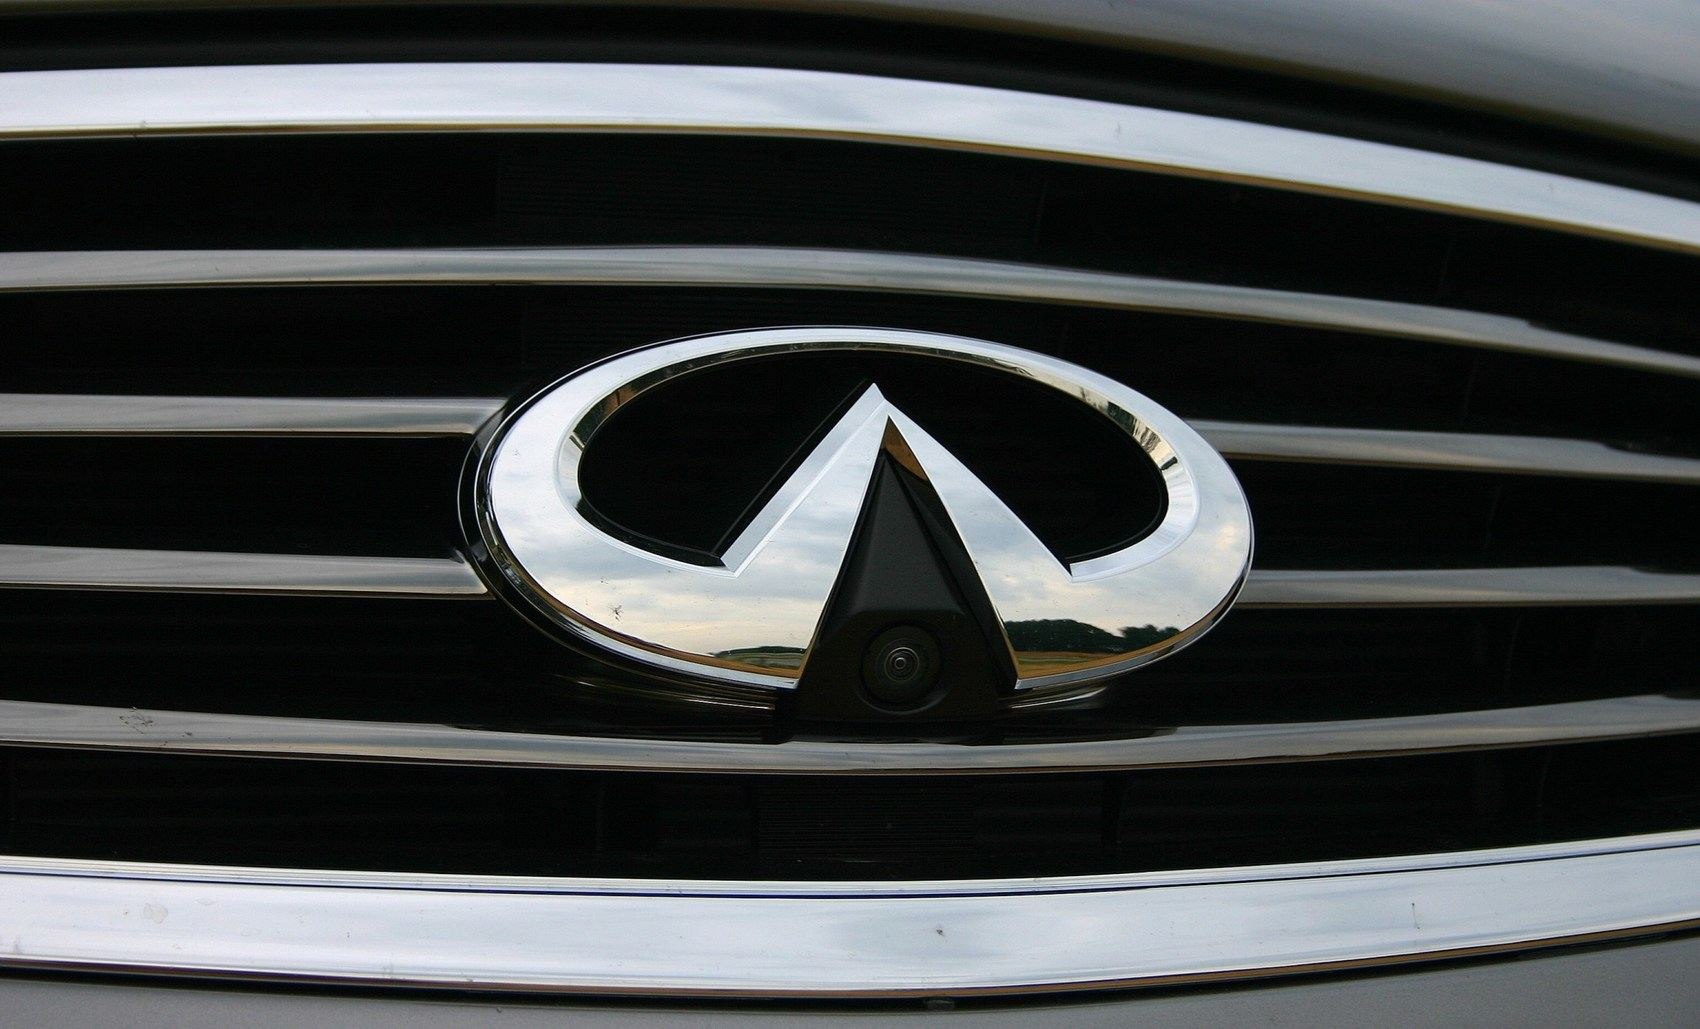 Should You Purchase an Infiniti Extended Warranty?